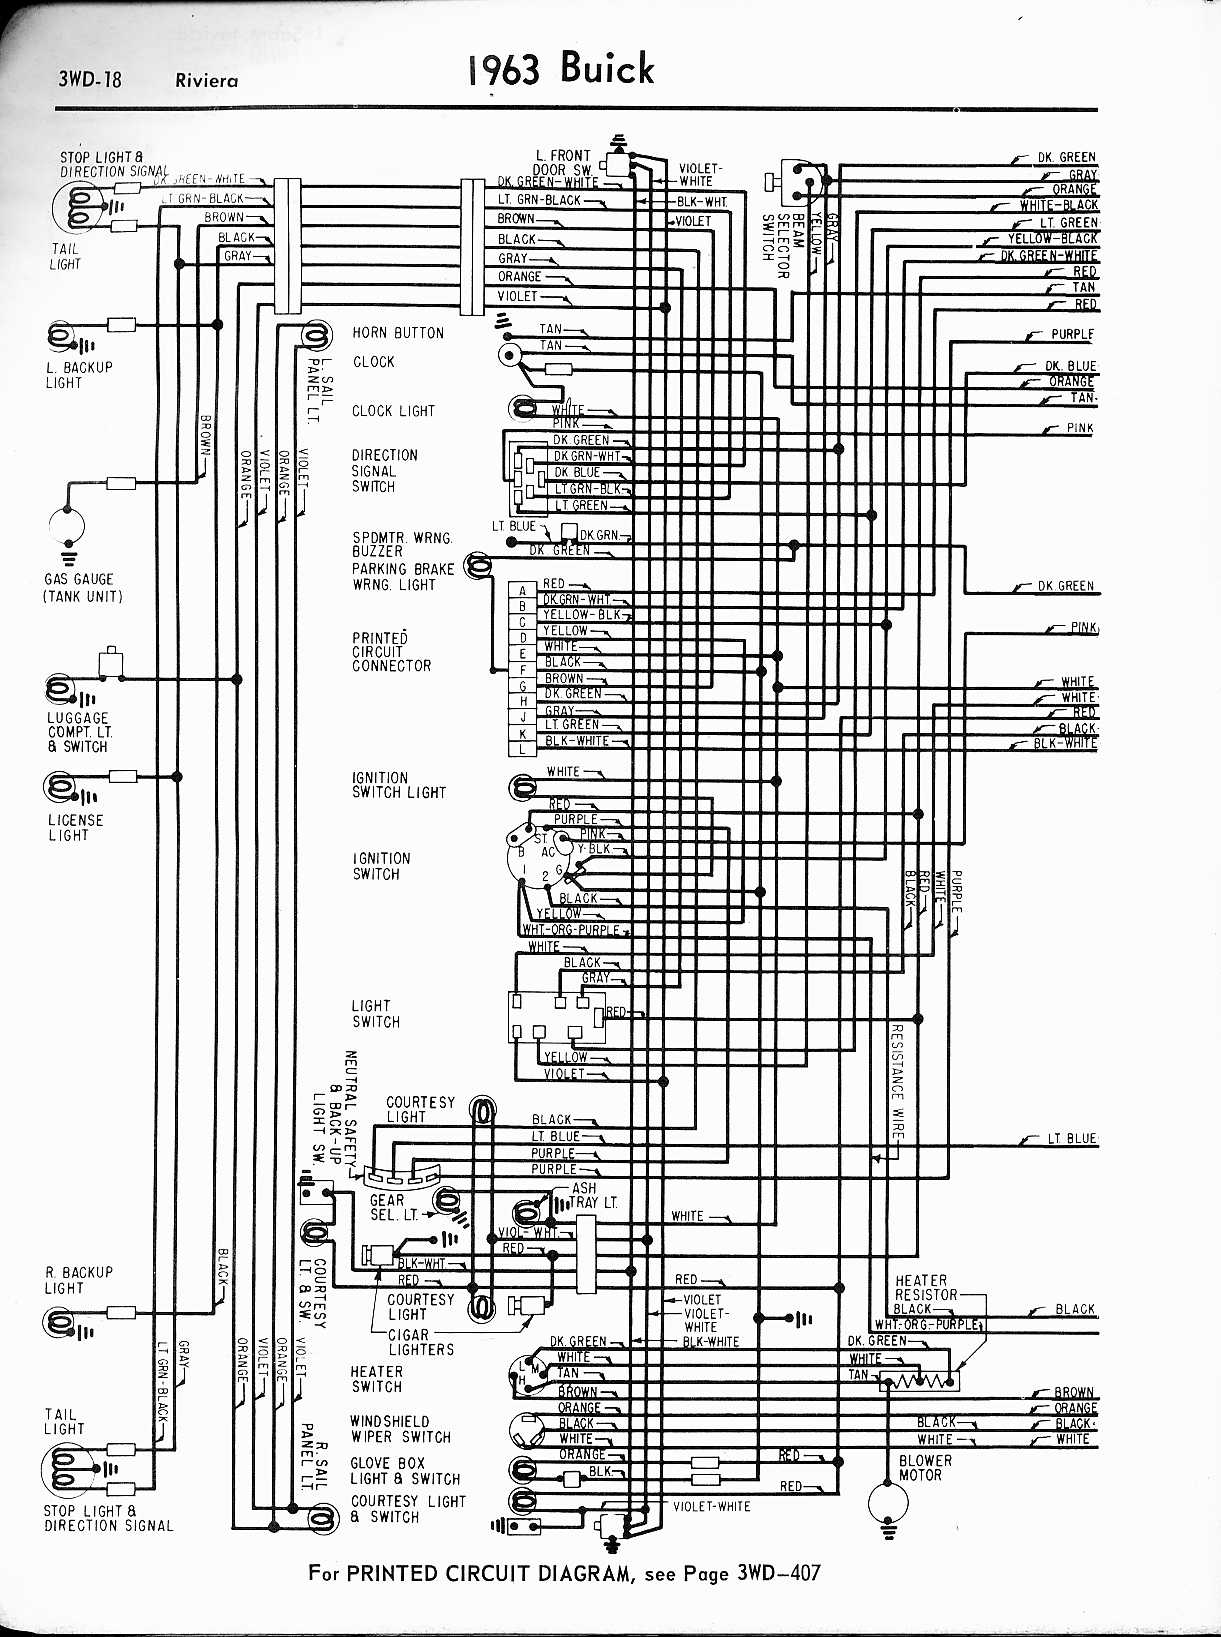 1972 buick wiring diagram residential electrical symbols \u2022 paint colors for 1972 buick skylark 1963 buick riviera wiring diagram wire center u2022 rh linxglobal co 1972 buick skylark engine wiring